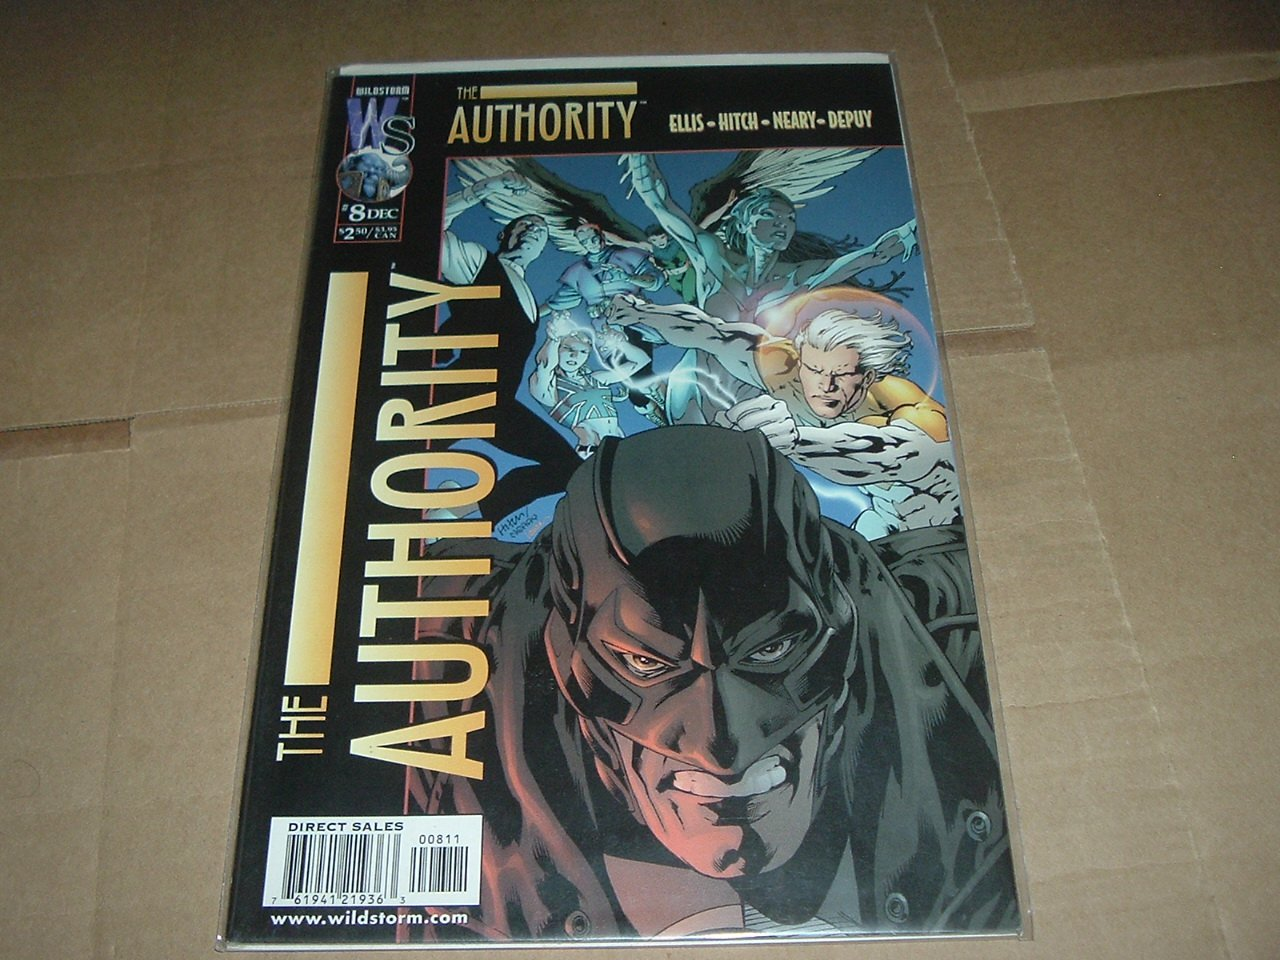 Authority #8 (vol 1) Warren Ellis, Bryan Hitch (DC Wildstorm Comics 1999) FLAT RATE SHIPPING SPECIAL